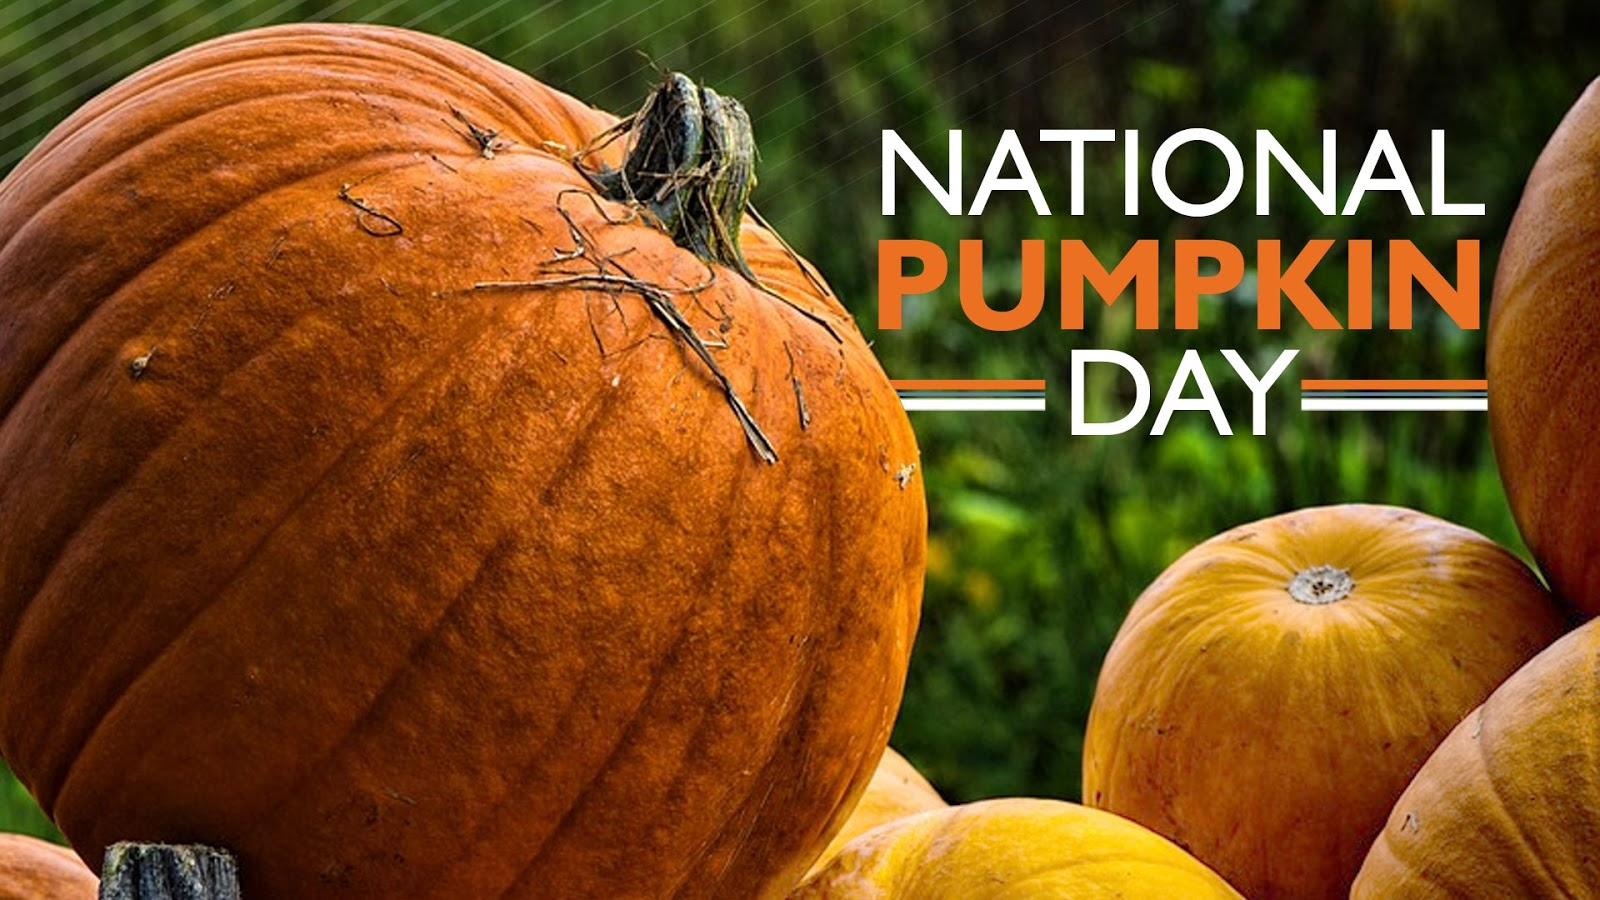 National Pumpkin Day Wishes for Instagram